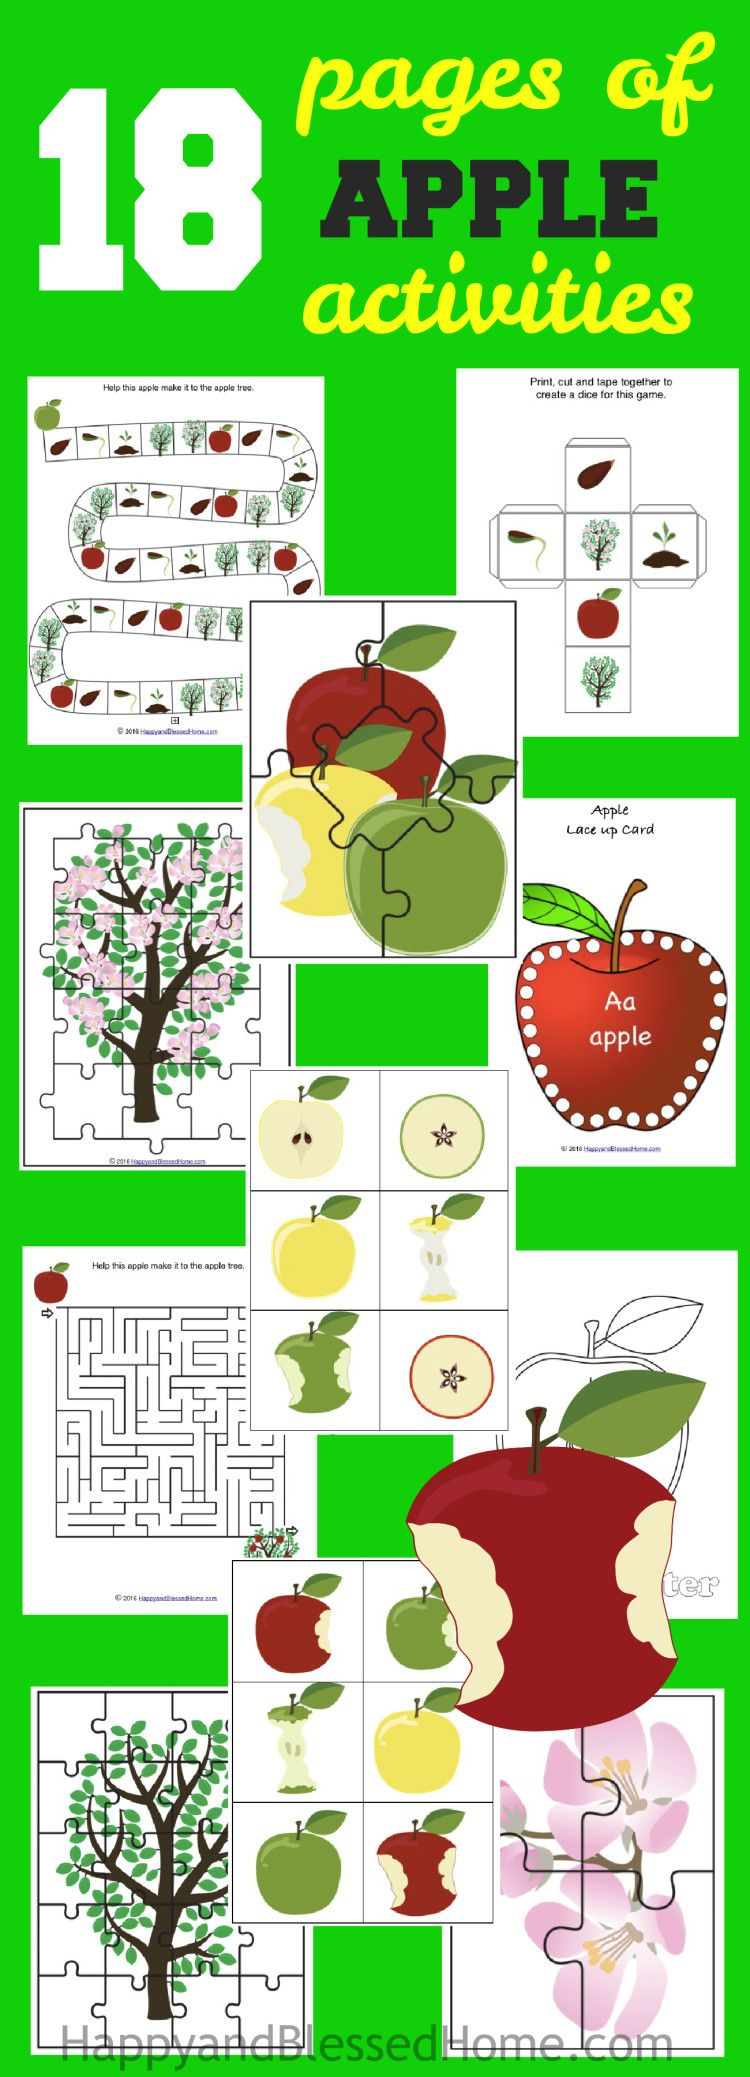 Delicious Apple Recipes   Apple activities, Free worksheets and Game ...